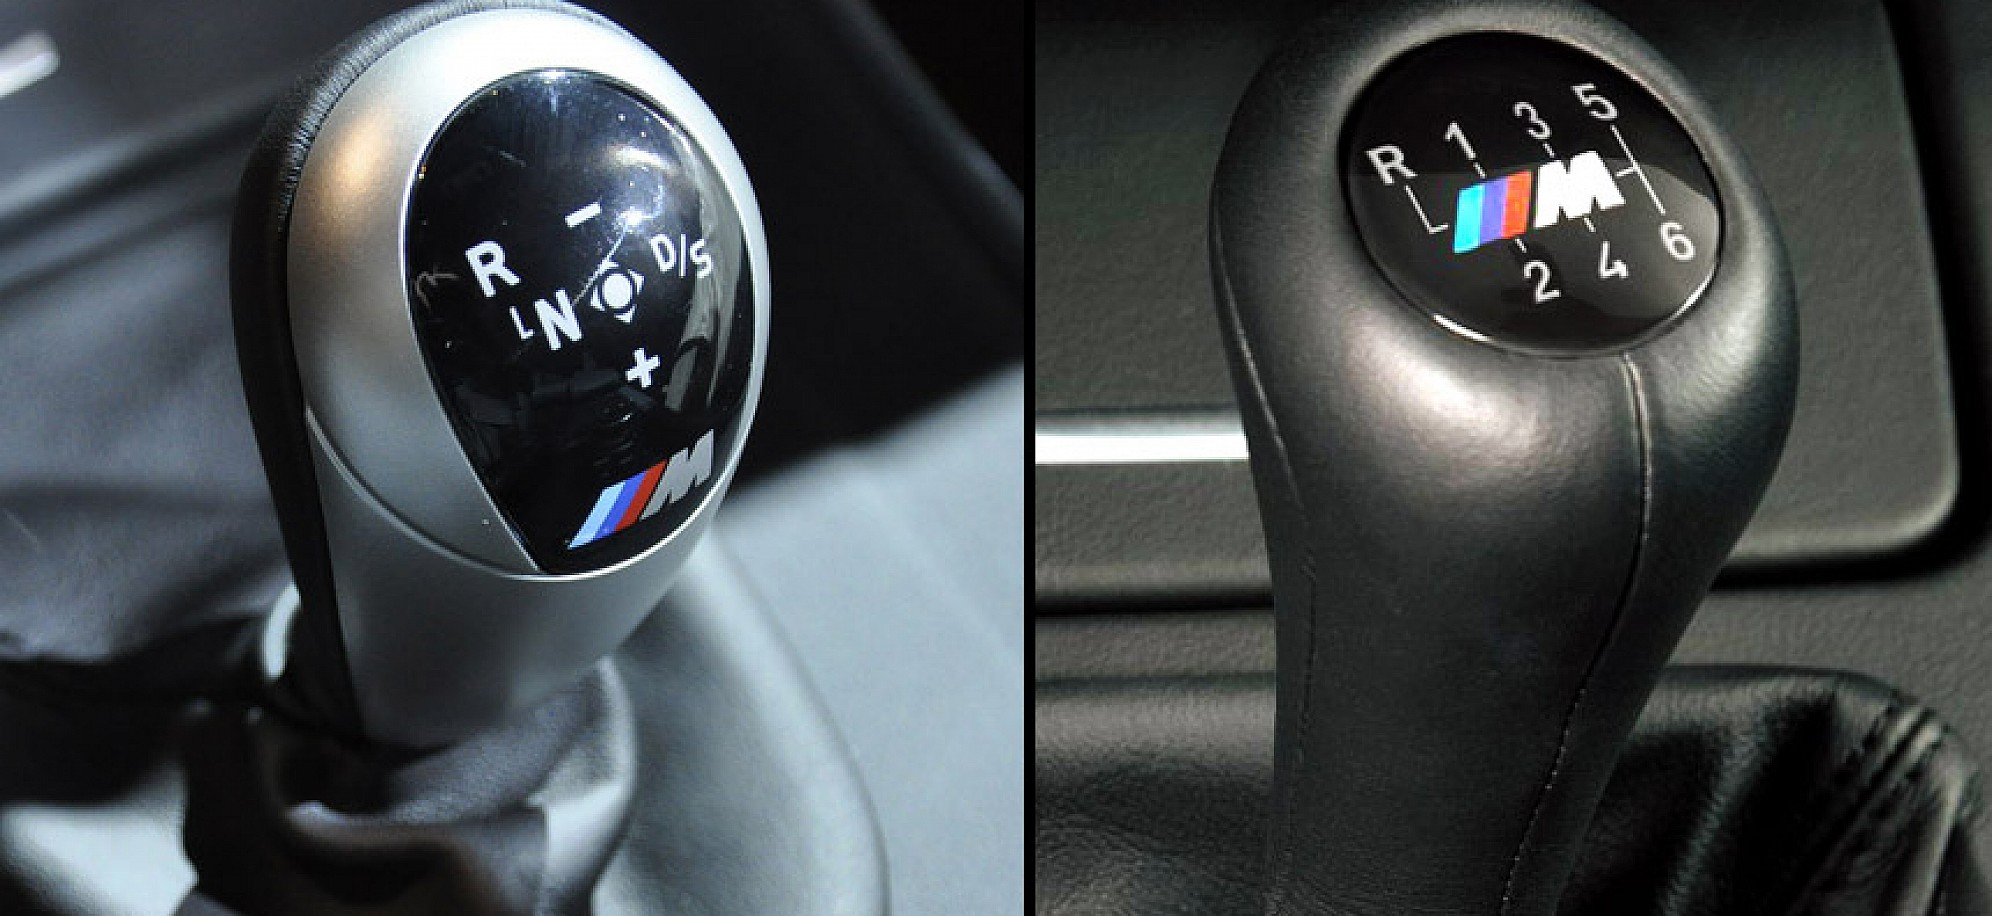 dual clutch vs manual transmission bmw m4 rh bmwblog com bmw m3 e92 dct or manual bmw m3 dct vs manual